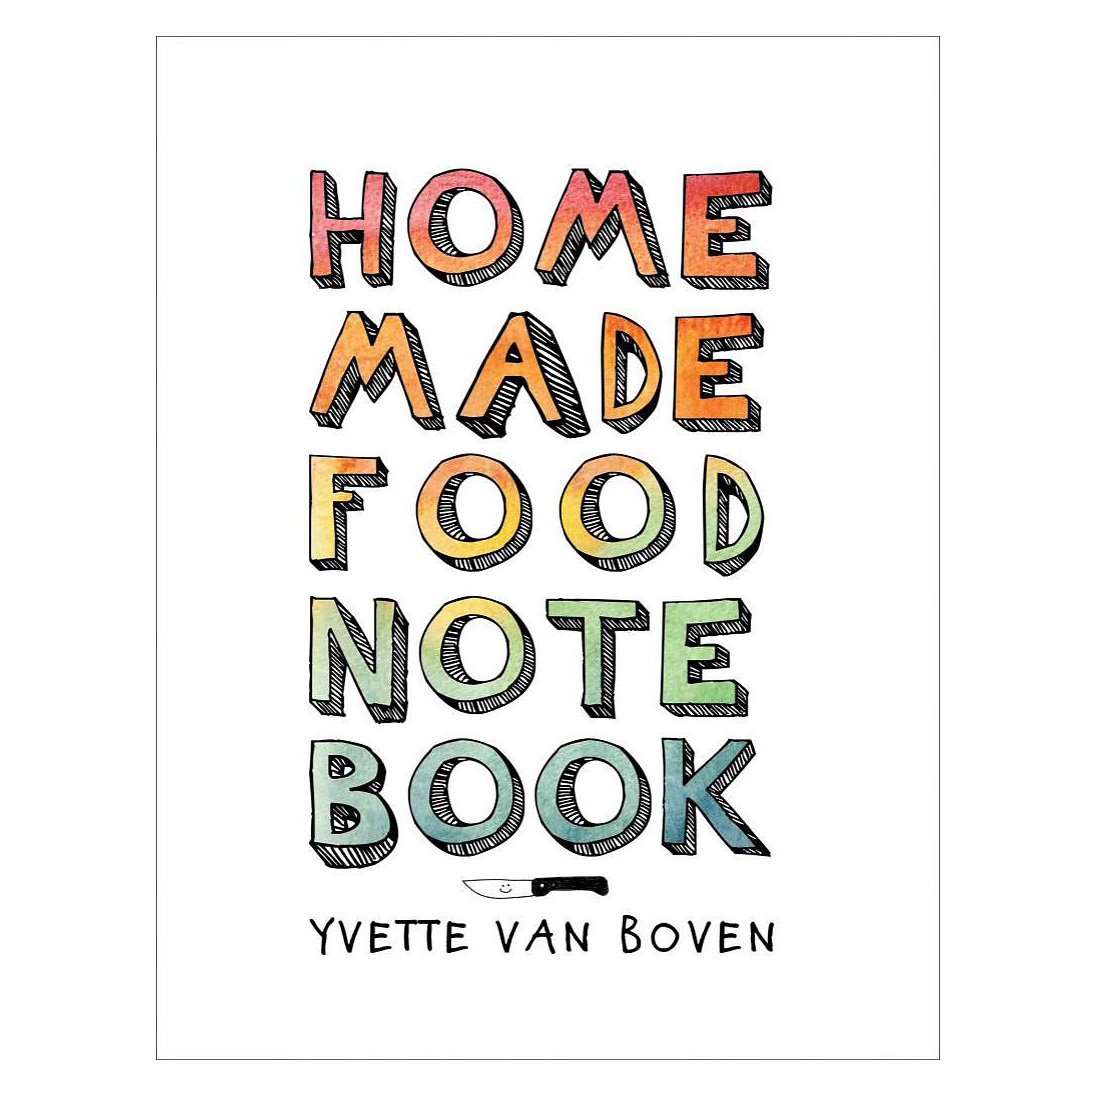 bis-home made food notebook